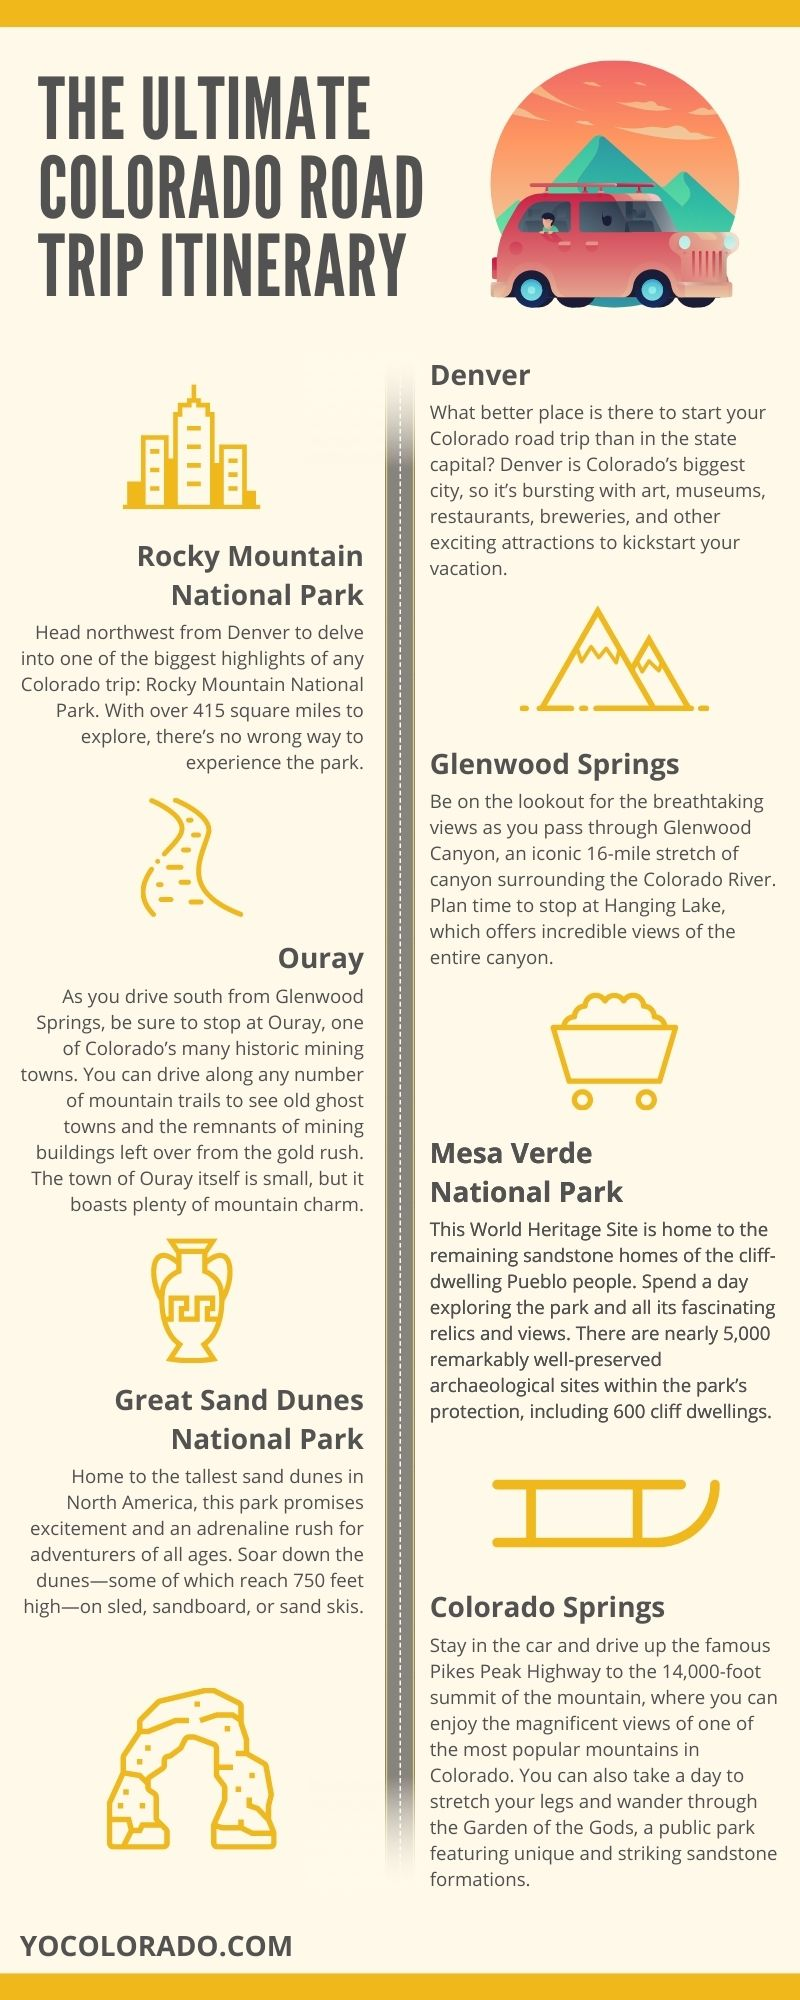 The Ultimate Colorado Road Trip Itinerary infographic